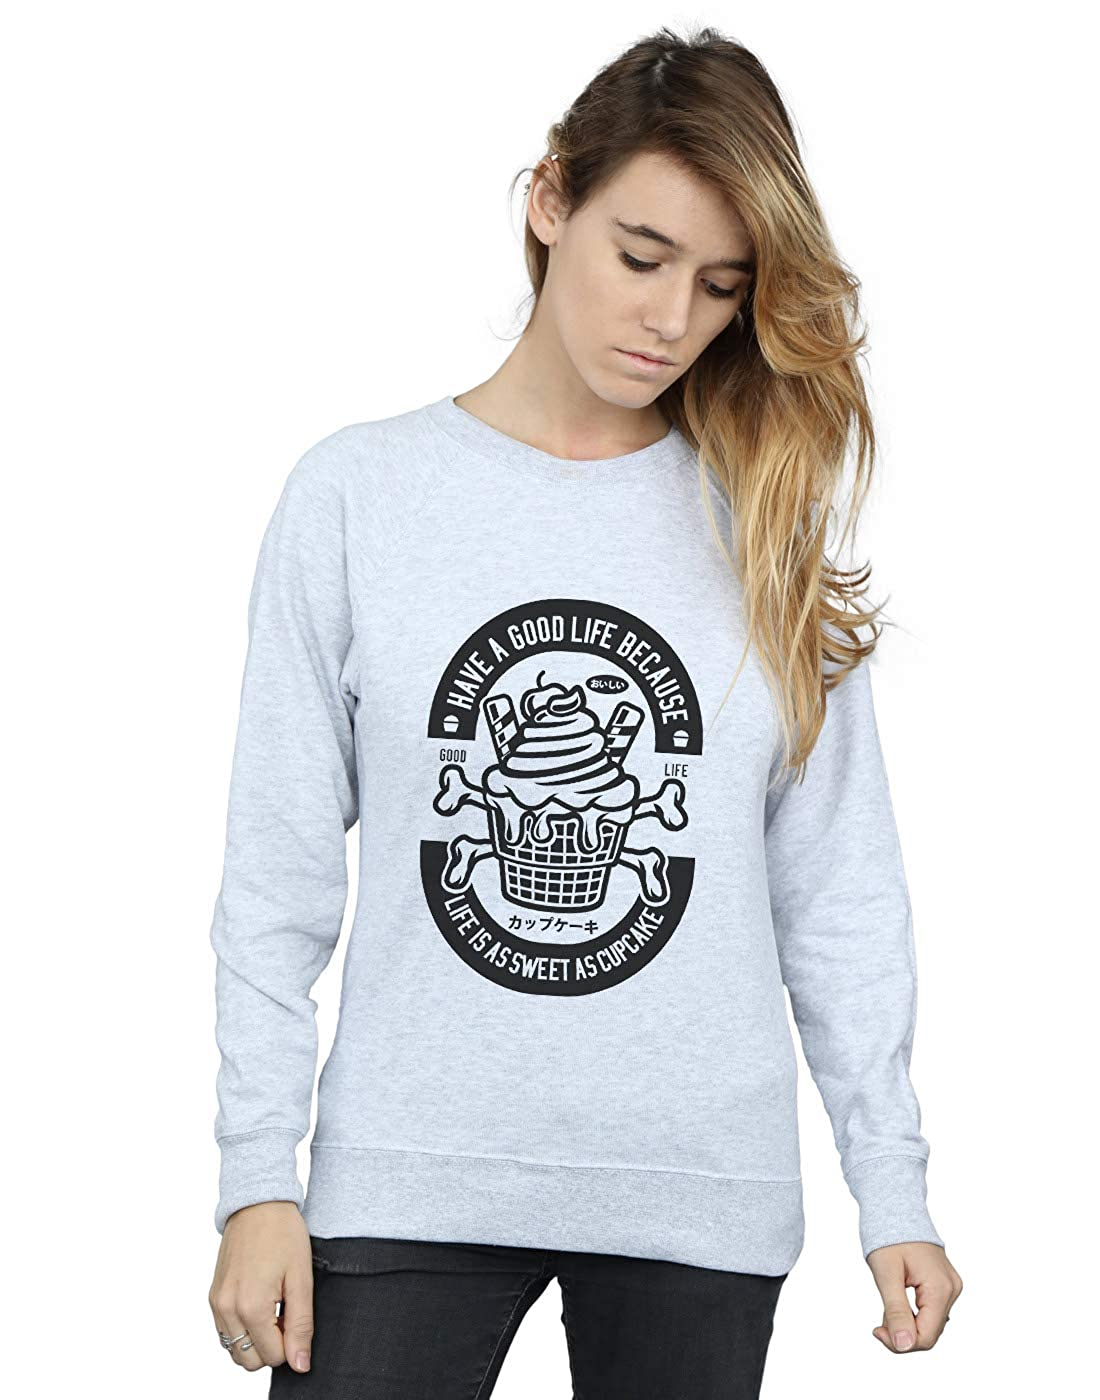 Absolute Cult Drewbacca Womens Good Life Cupcake Sweatshirt